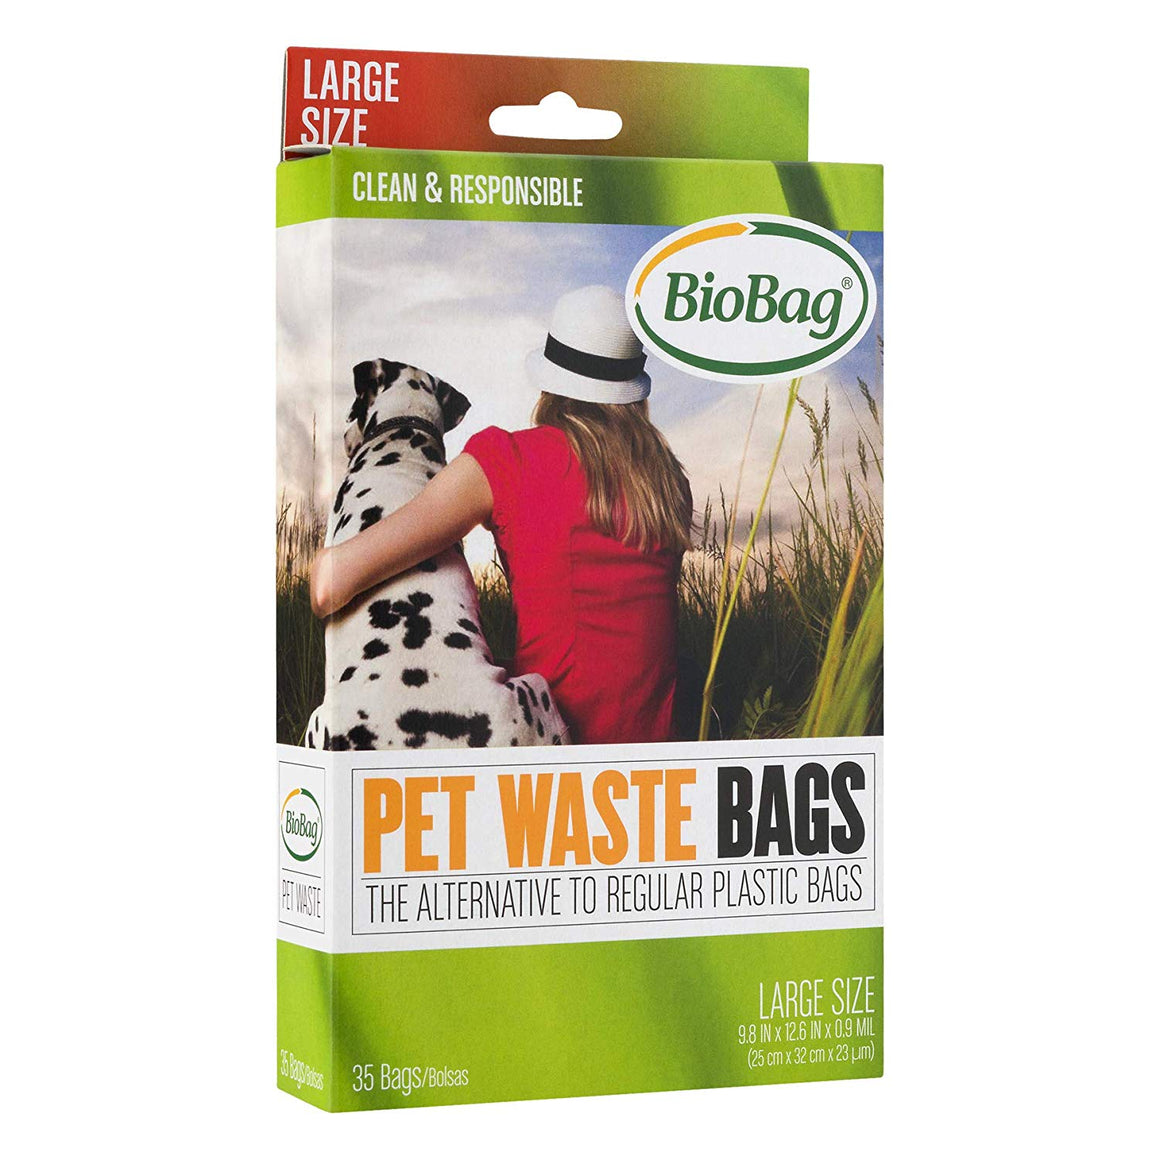 "9.8"" X 12.5"" X 0.9 Mil Black Certified Compostable Plastic Pet Waste Bags (420 Bags Packed 35 Bags/Box, 12 Boxes/Case)"